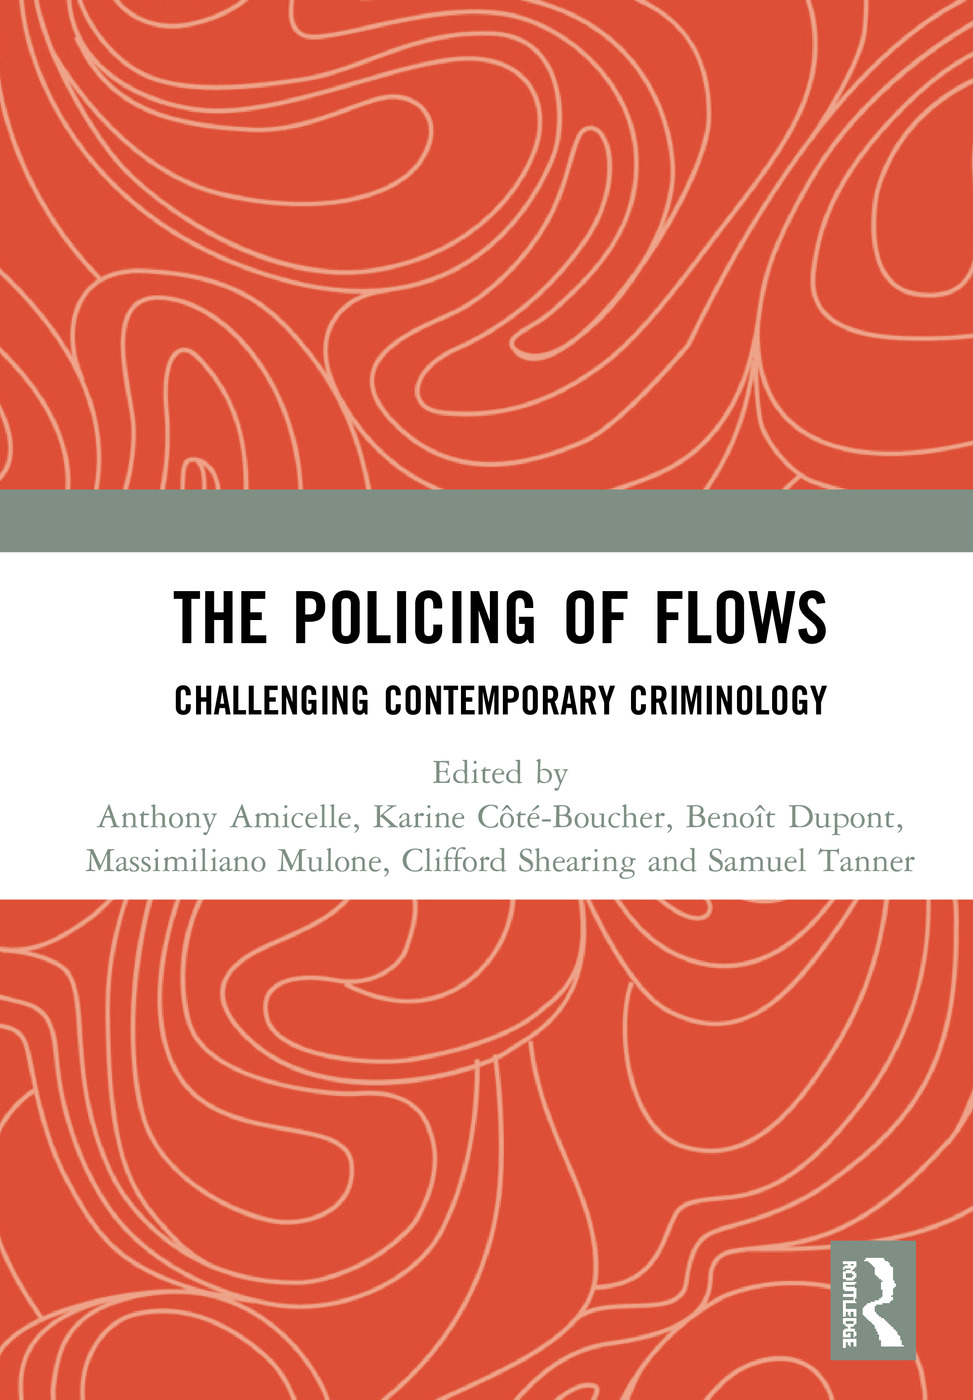 The Policing of Flows: Challenging Contemporary Criminology, 1st Edition (Hardback) book cover